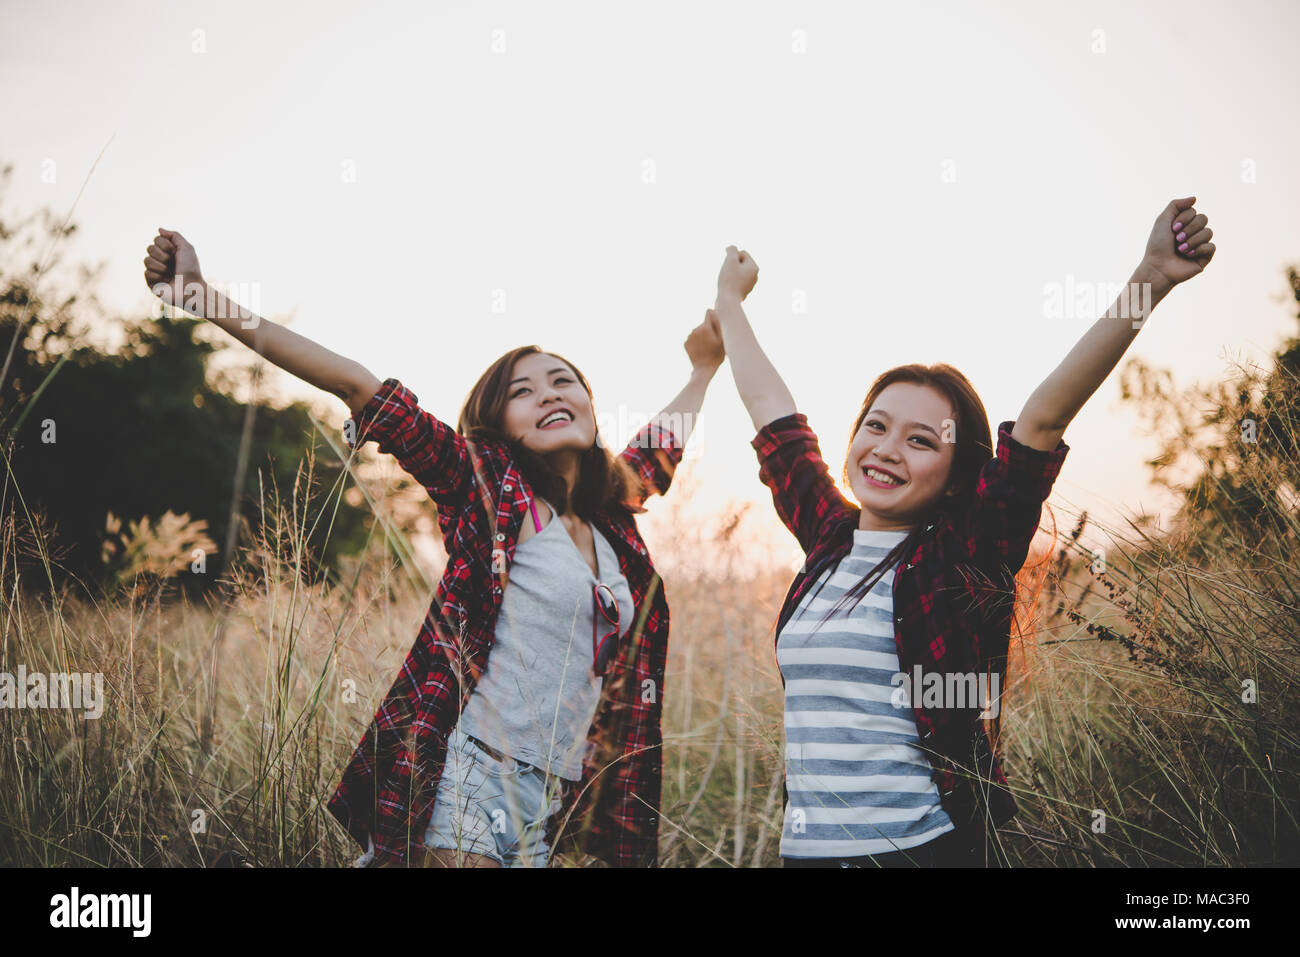 Close Up Of Two Girls Close Friends In Field With Sunset Background Freedom Enjoy Together Vintage Filter Style Happy Friendship In Field Stock Photo Alamy